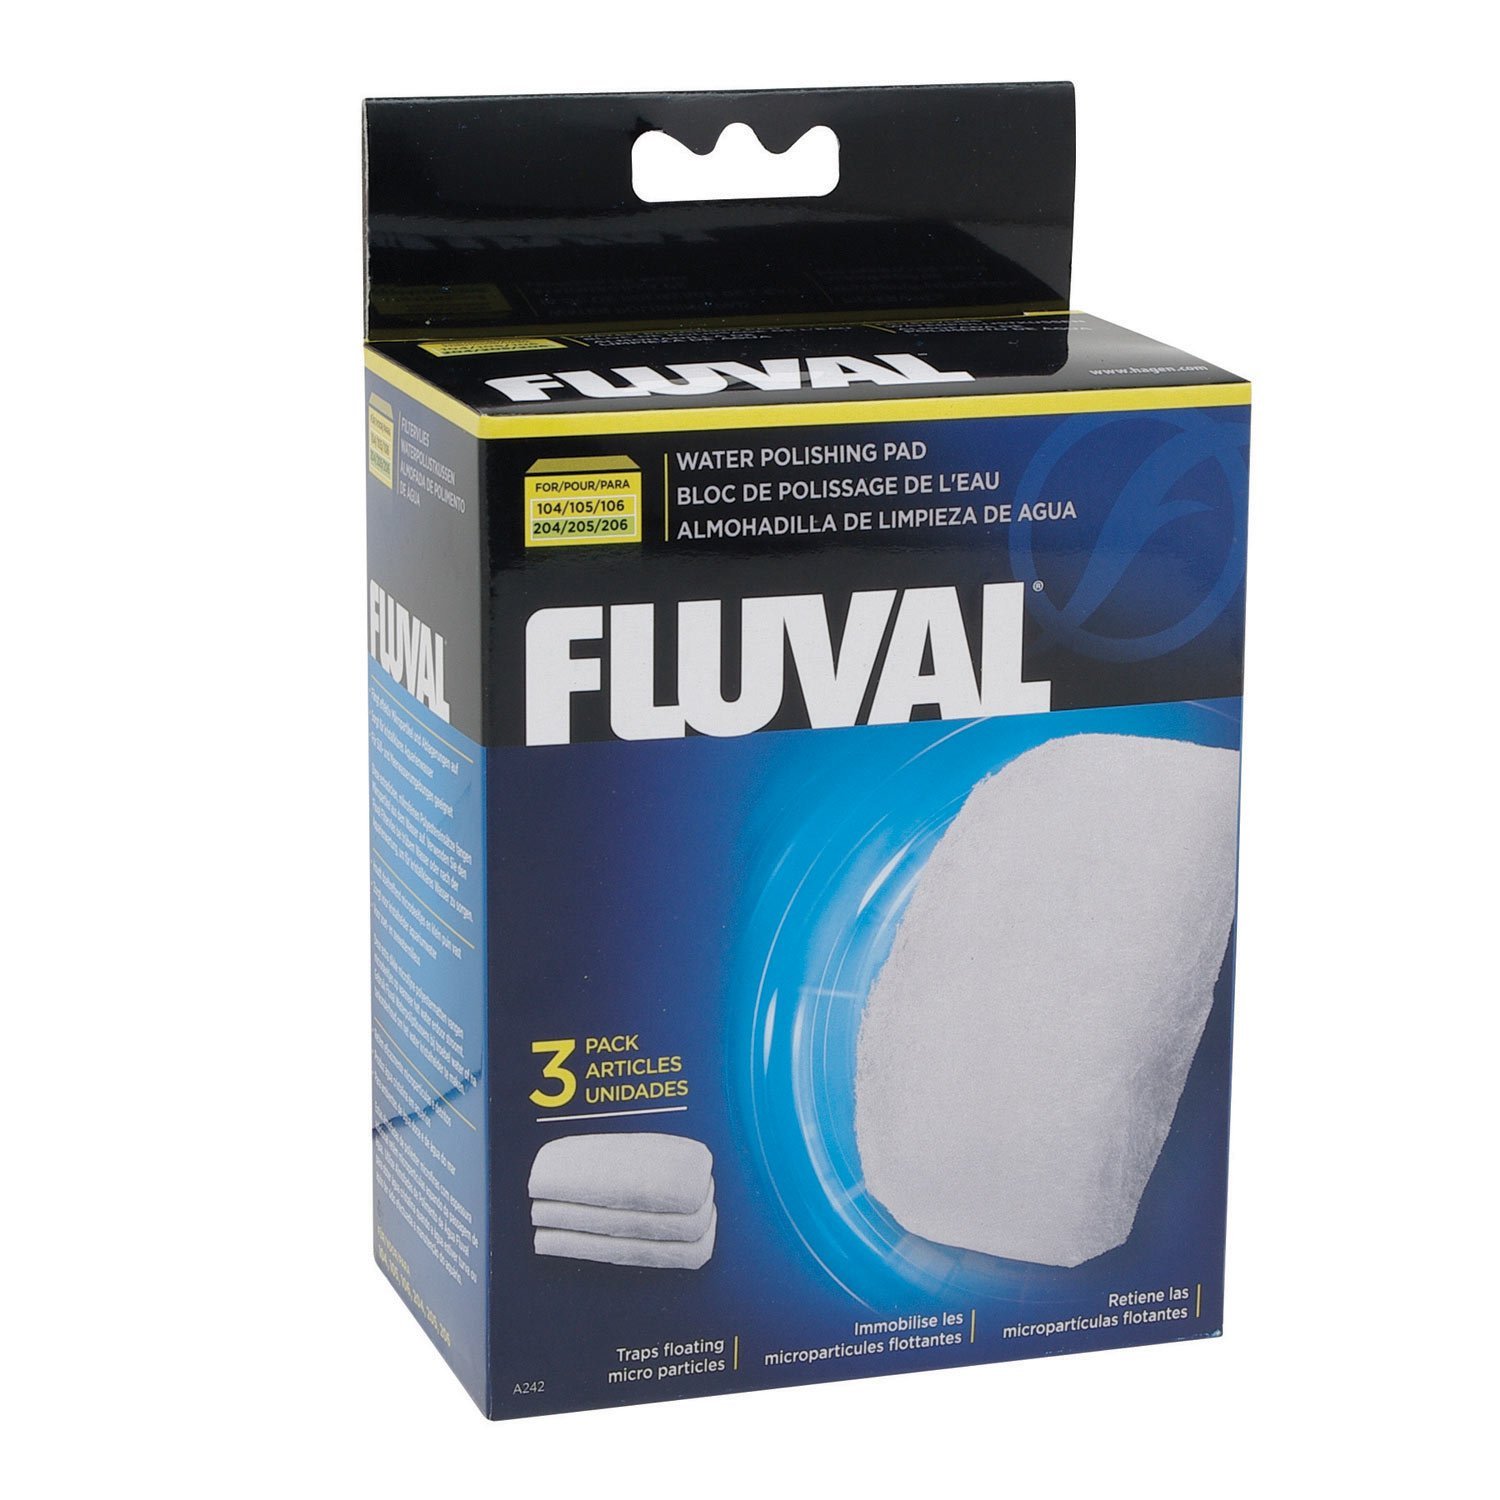 Fluval water polishing pad petco for Petco fish tank filters